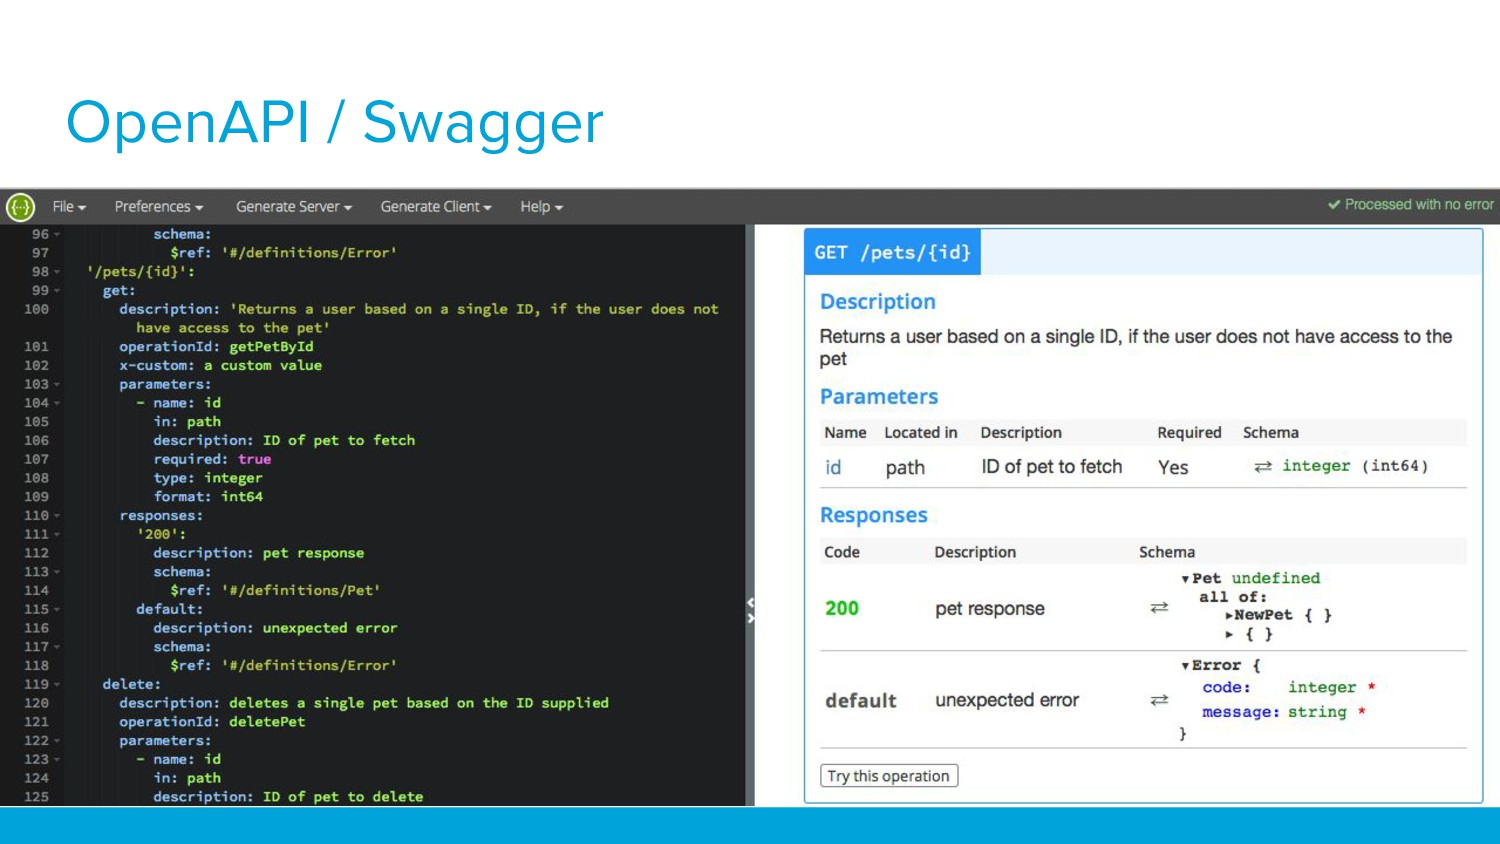 OpenAPI / Swagger